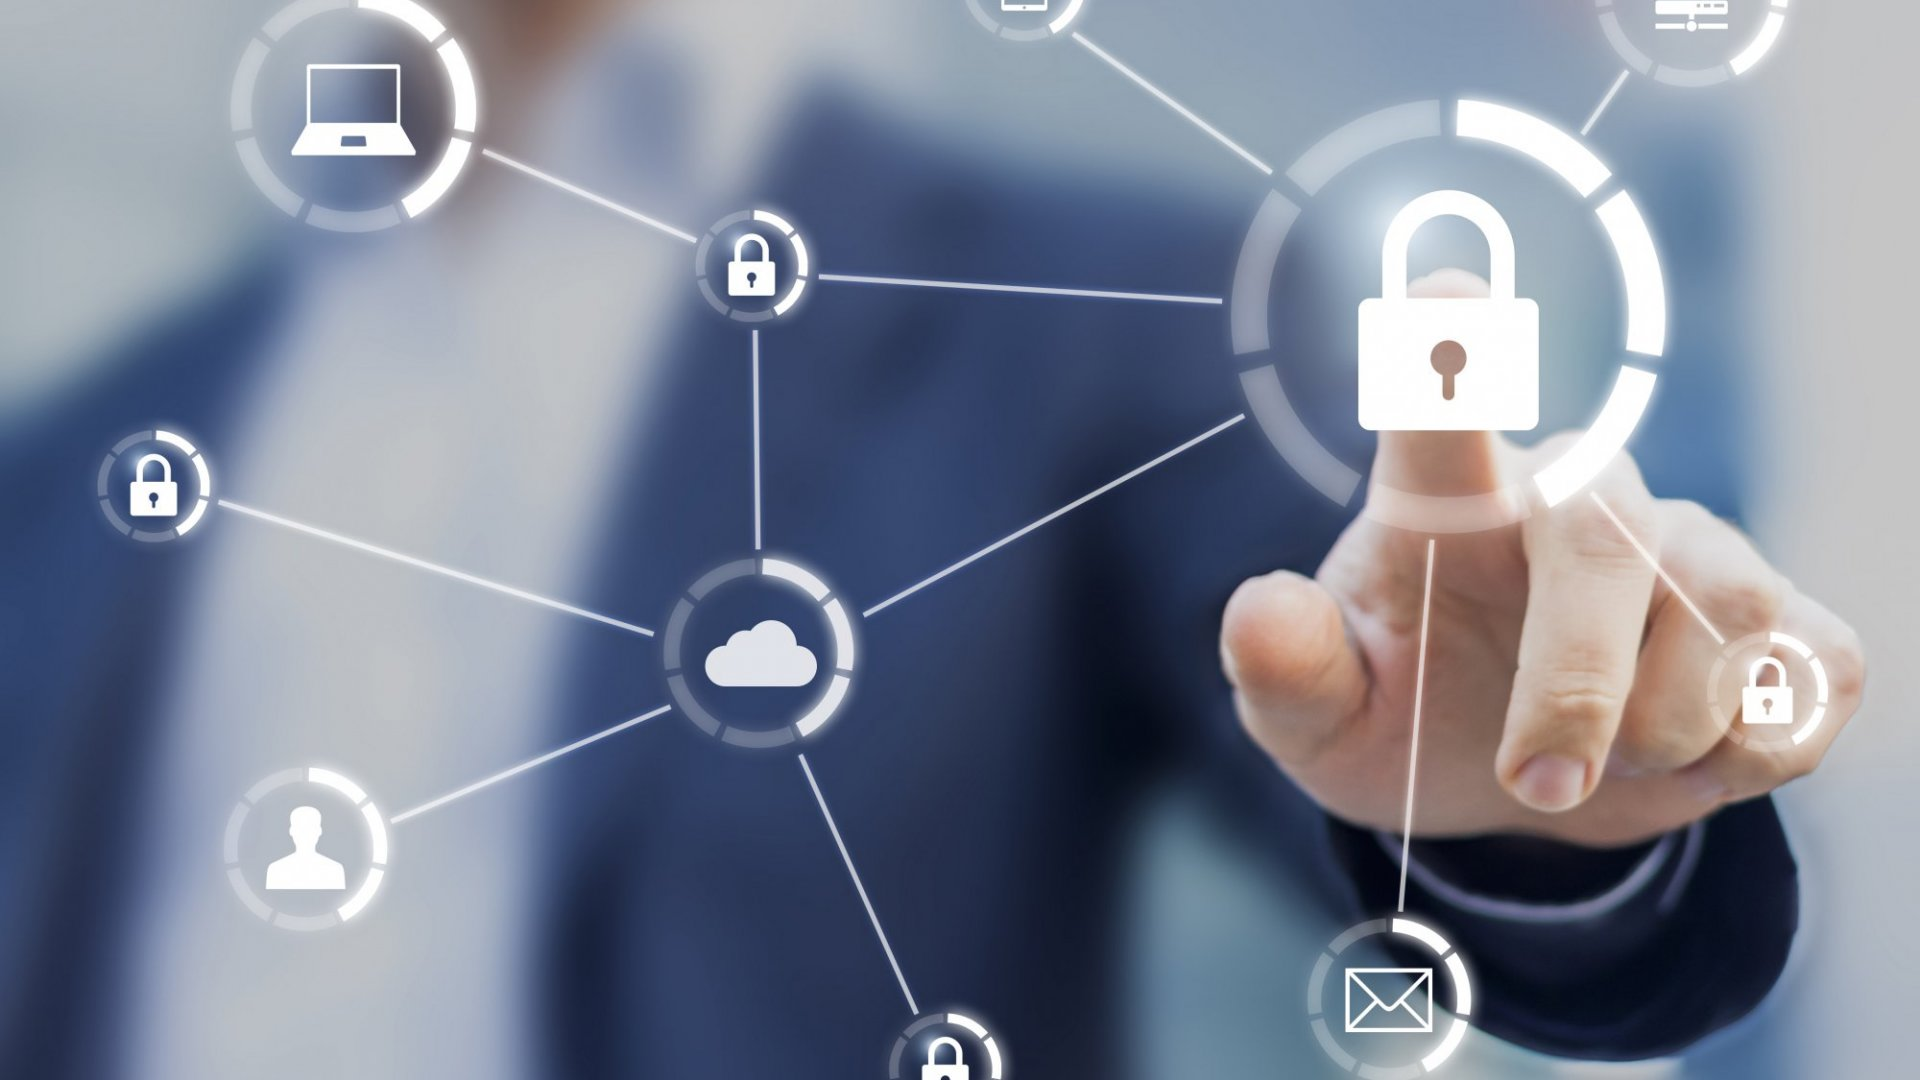 3 Ways to Improve Your Cybersecurity in 2018